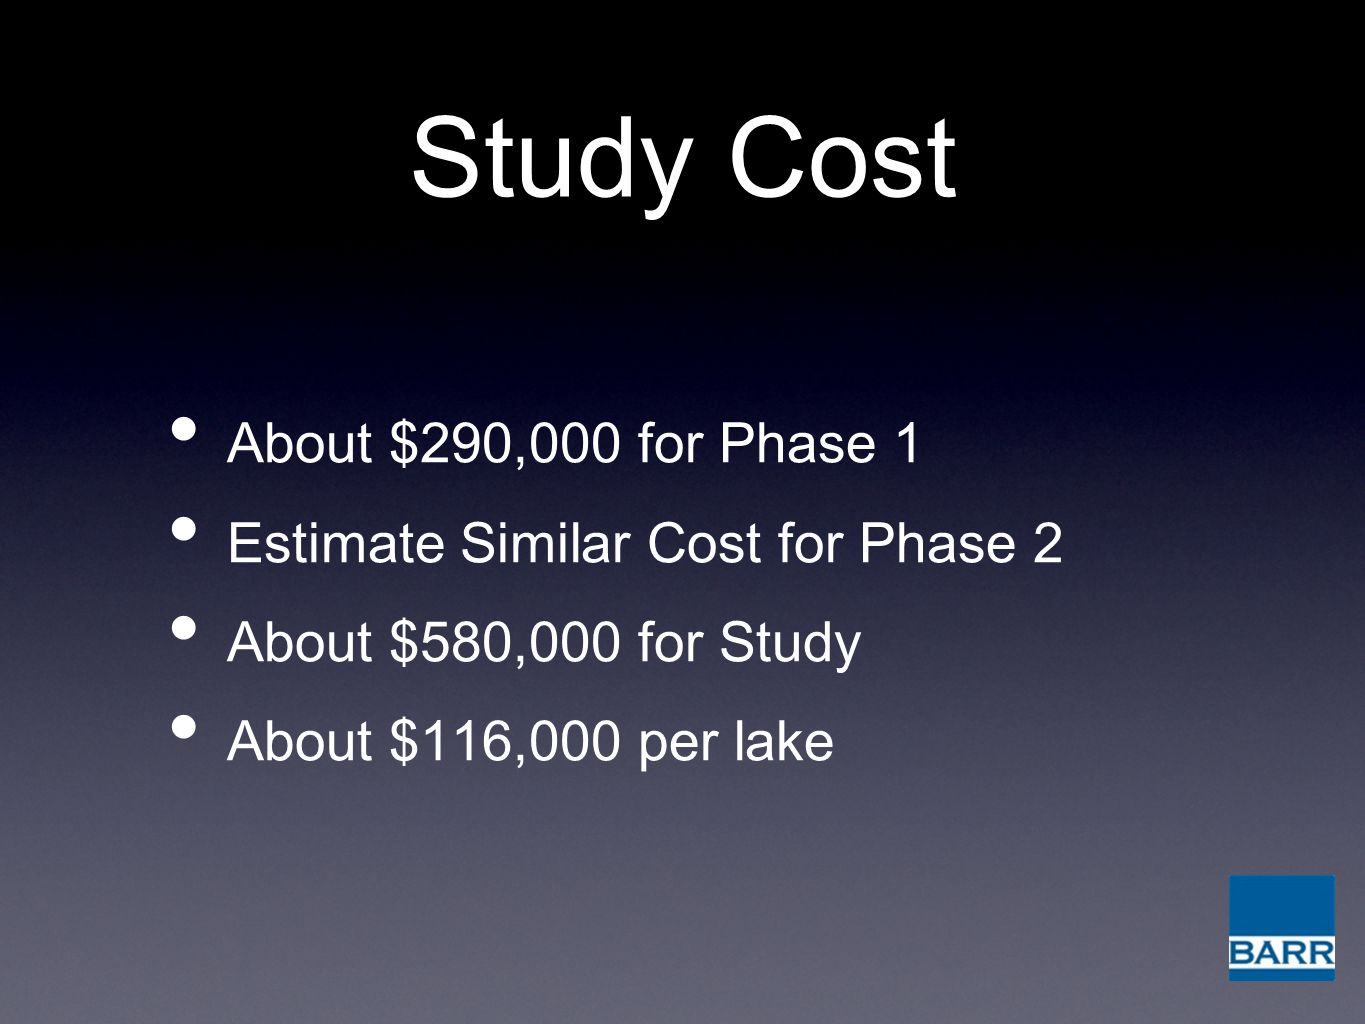 Study Cost About $290,000 for Phase 1 Estimate Similar Cost for Phase 2 About $580,000 for Study About $116,000 per lake